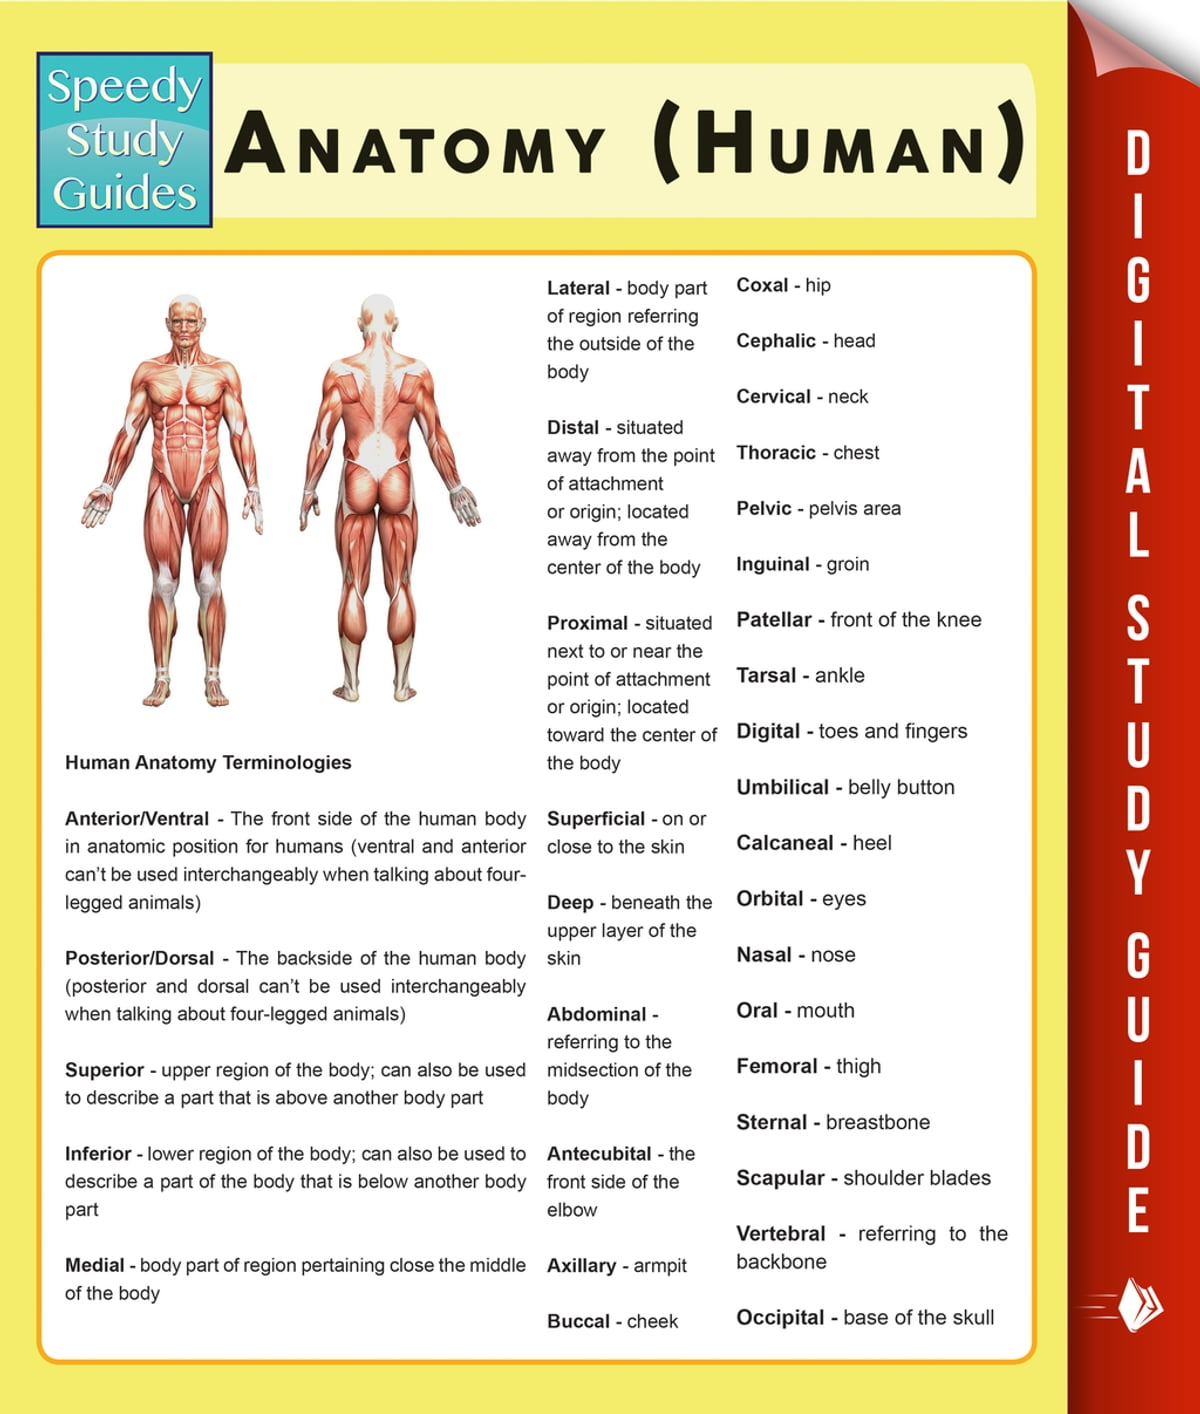 Anatomy Human Speedy Study Guides Ebook By Speedy Publishing